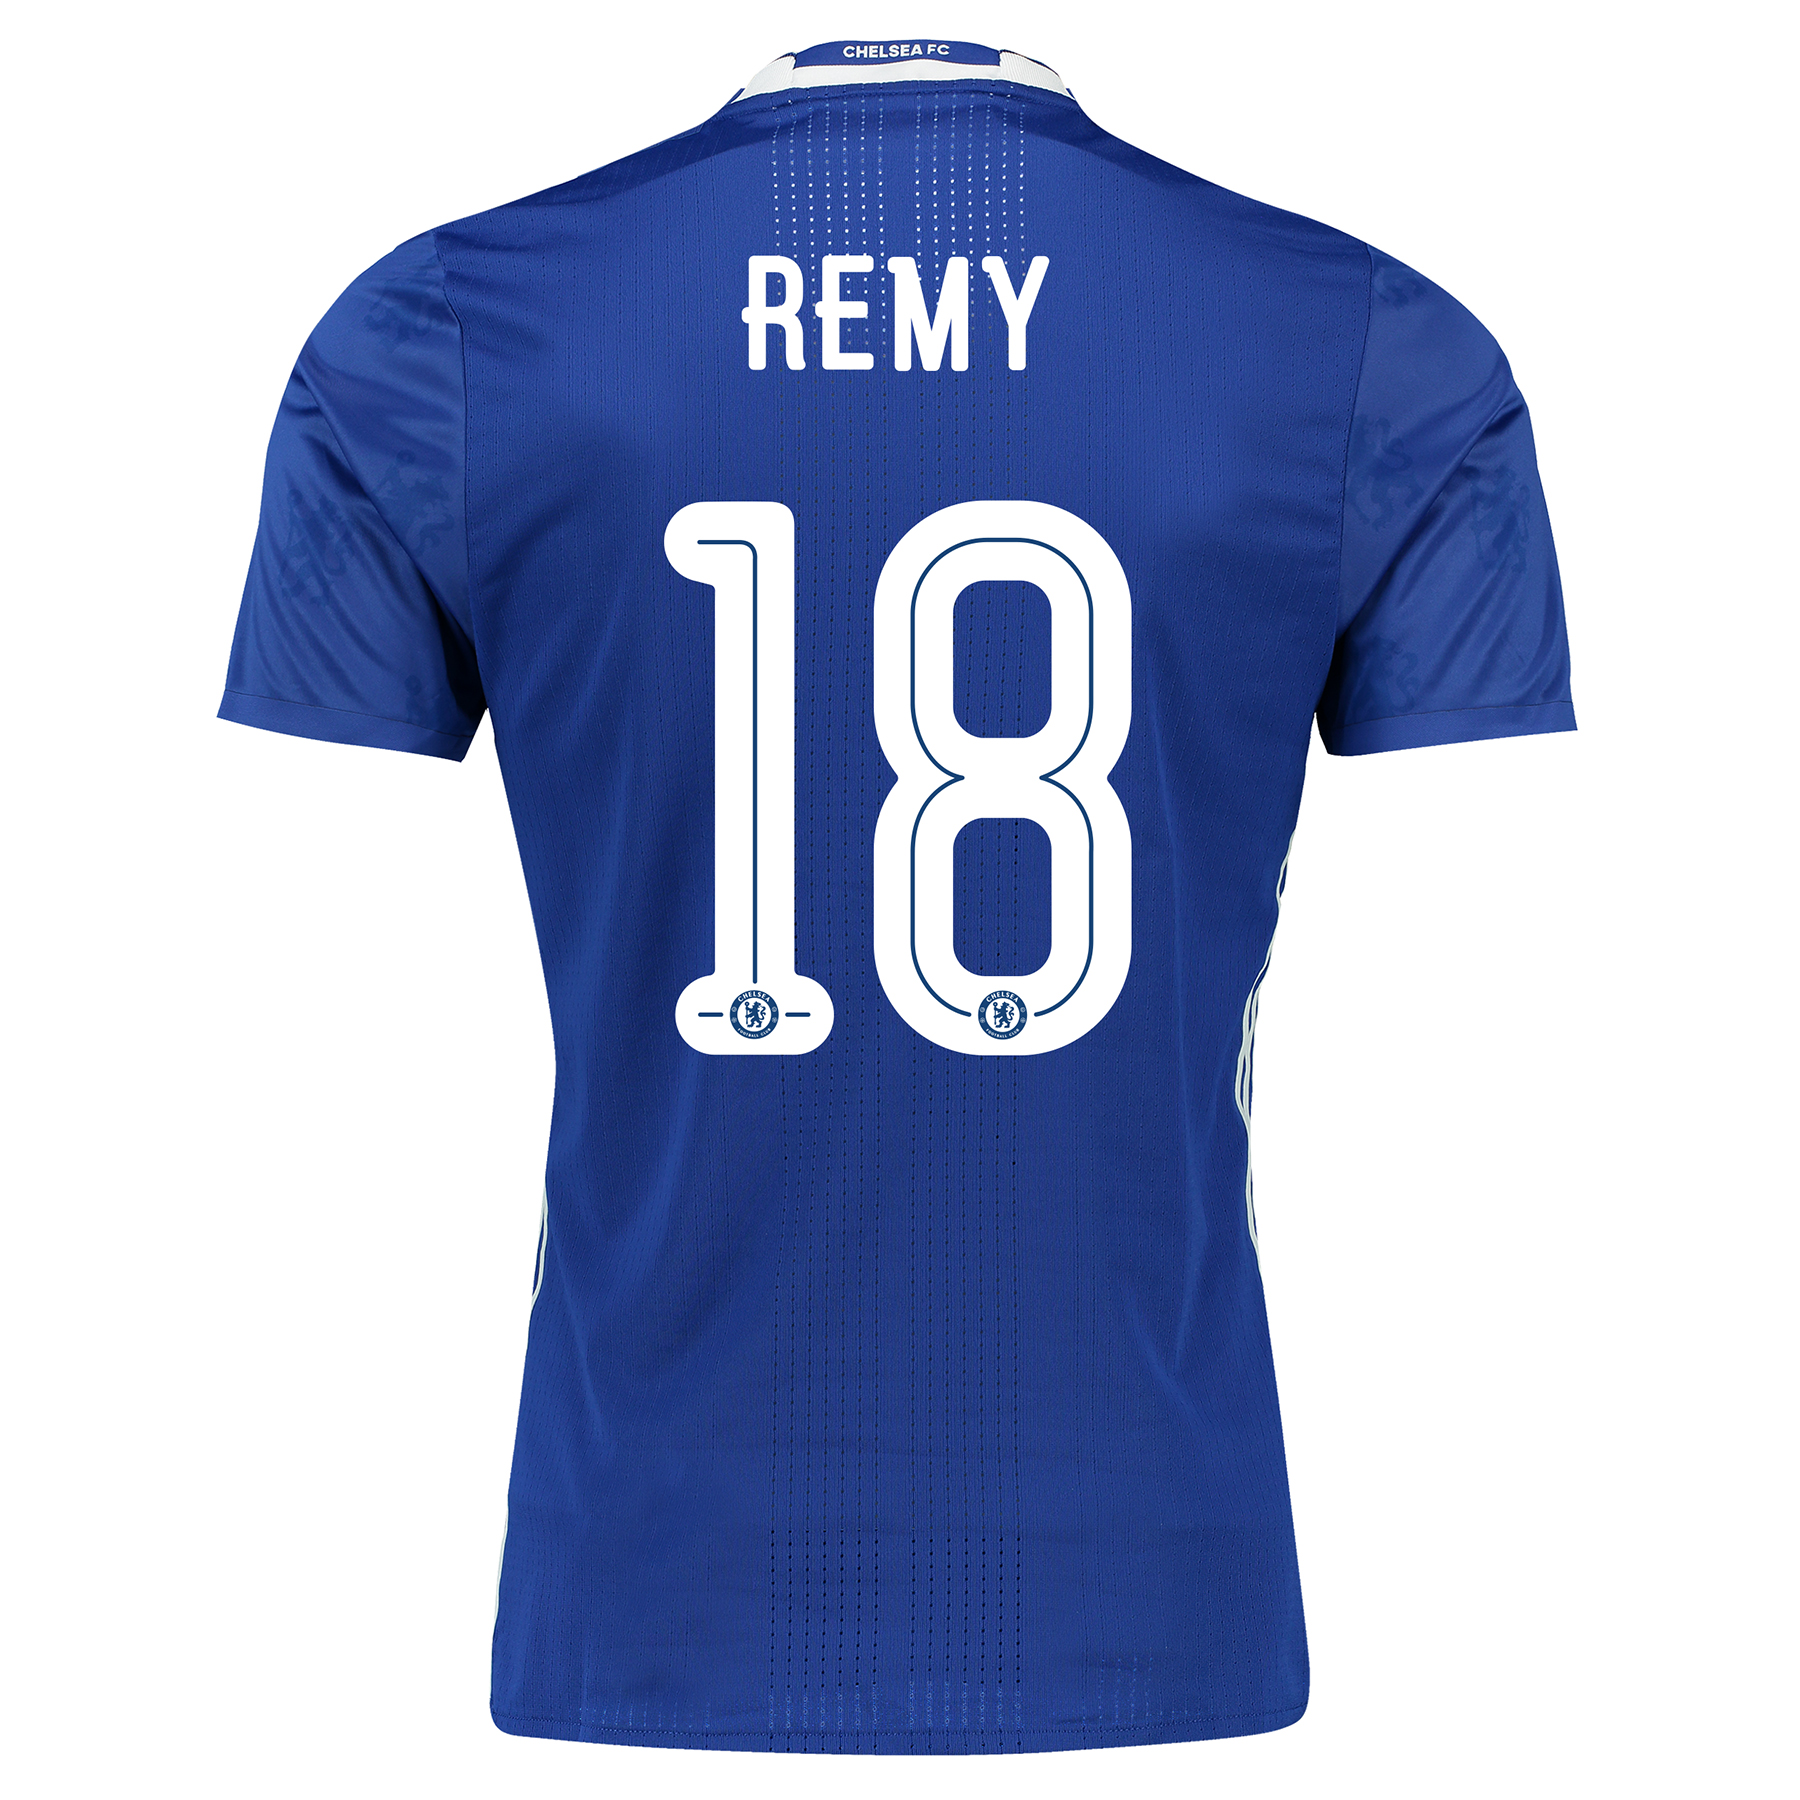 Chelsea Linear Home Adi Zero Shirt 2016-17 with Remy 18 printing